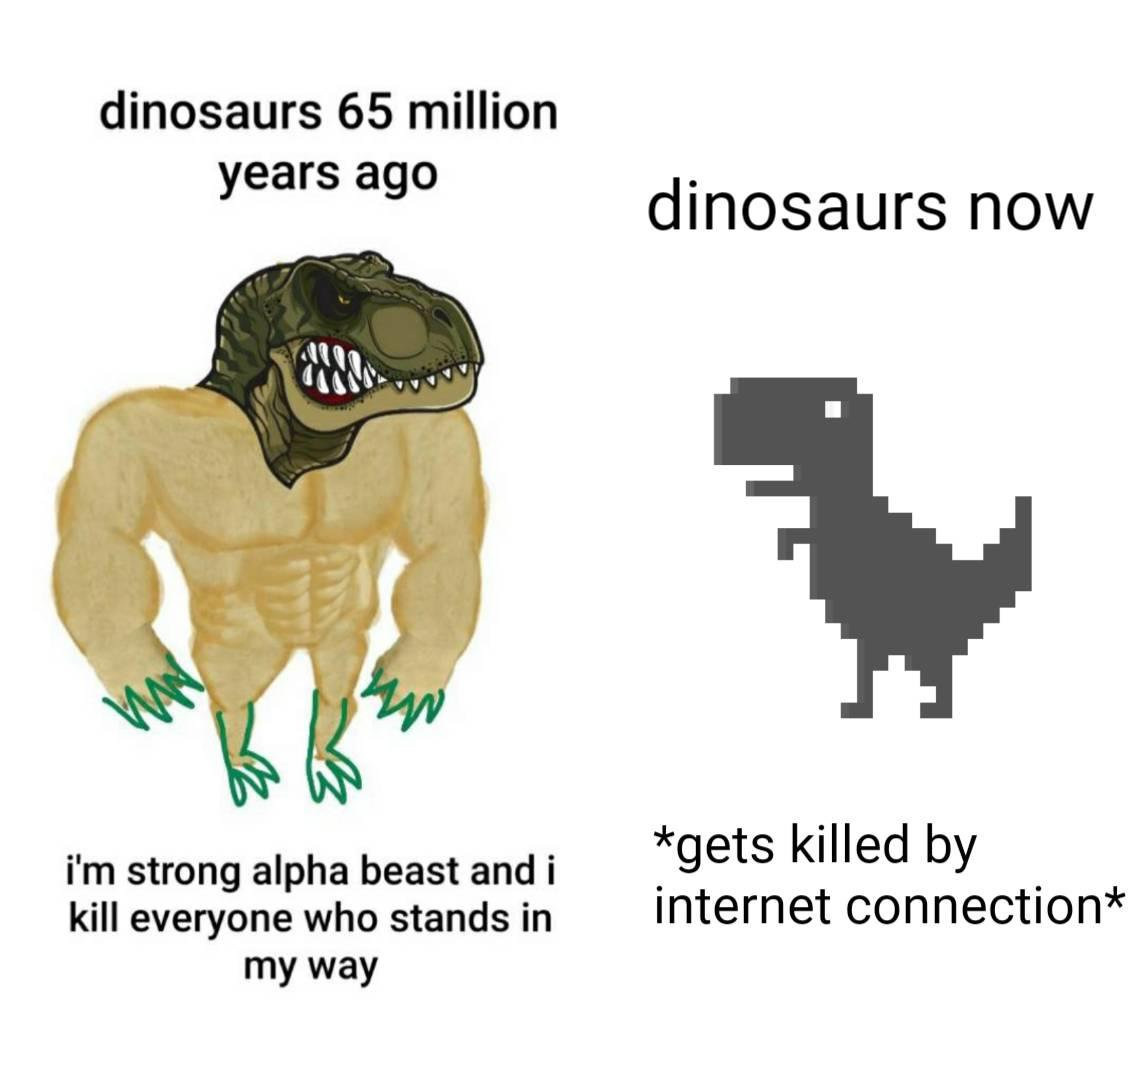 365 Days Cuinness Live Playing Chrome Dinosaur Game For 1 Year